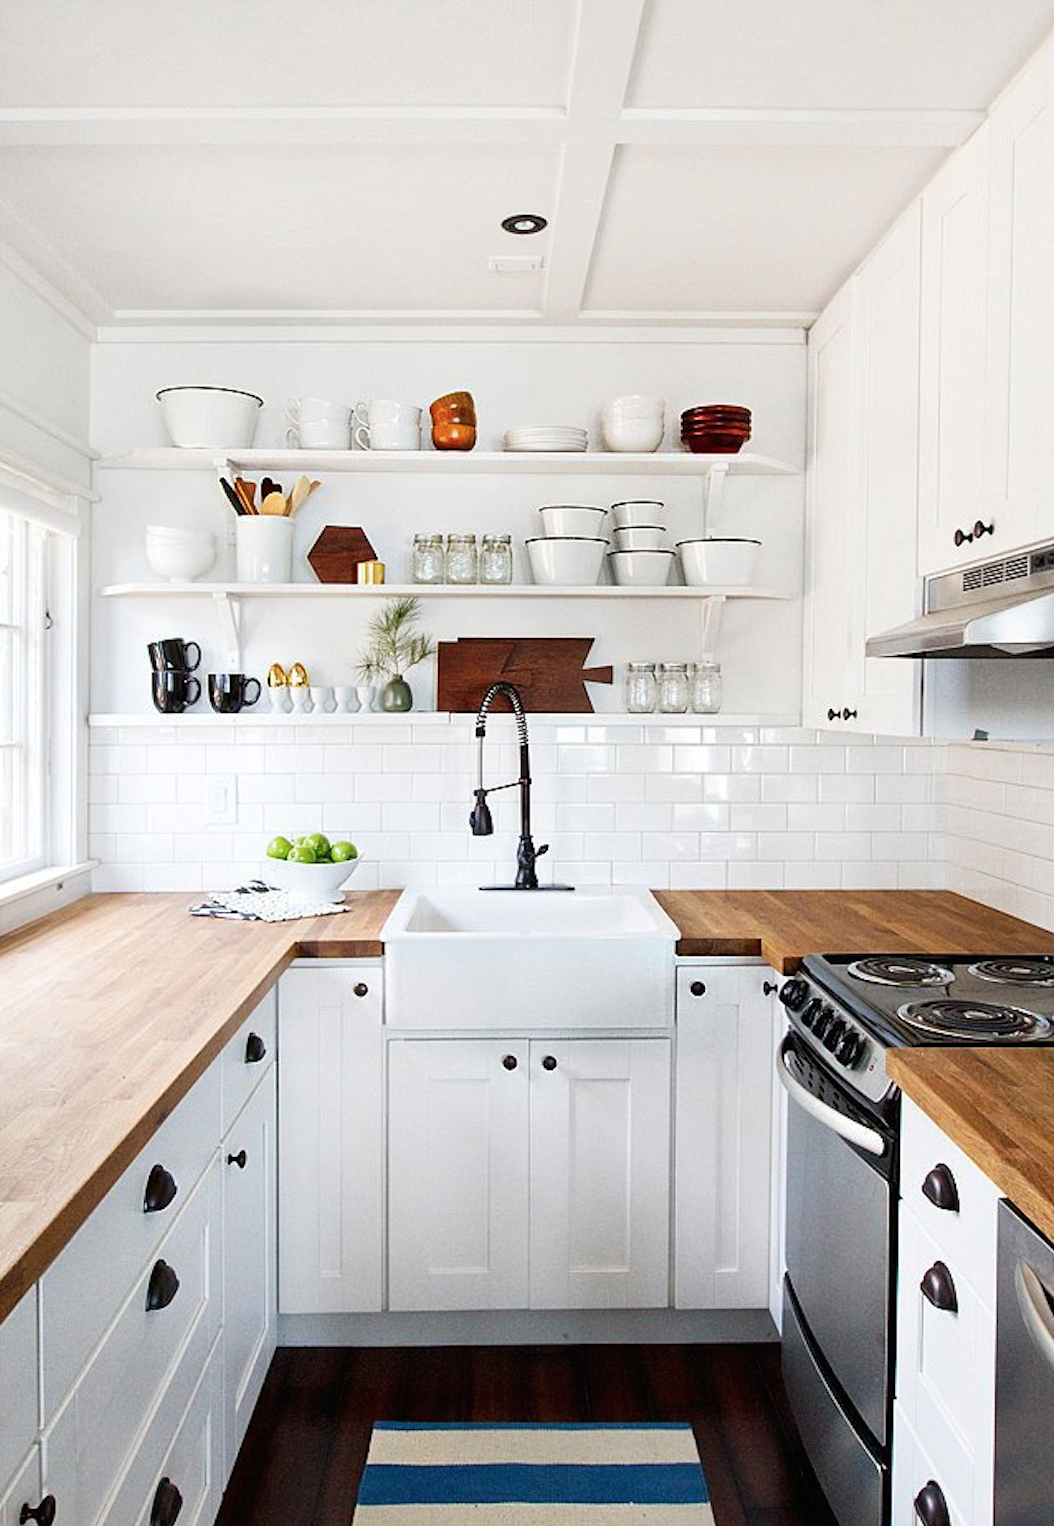 Remodeling butcher block countertops galley kitchens small